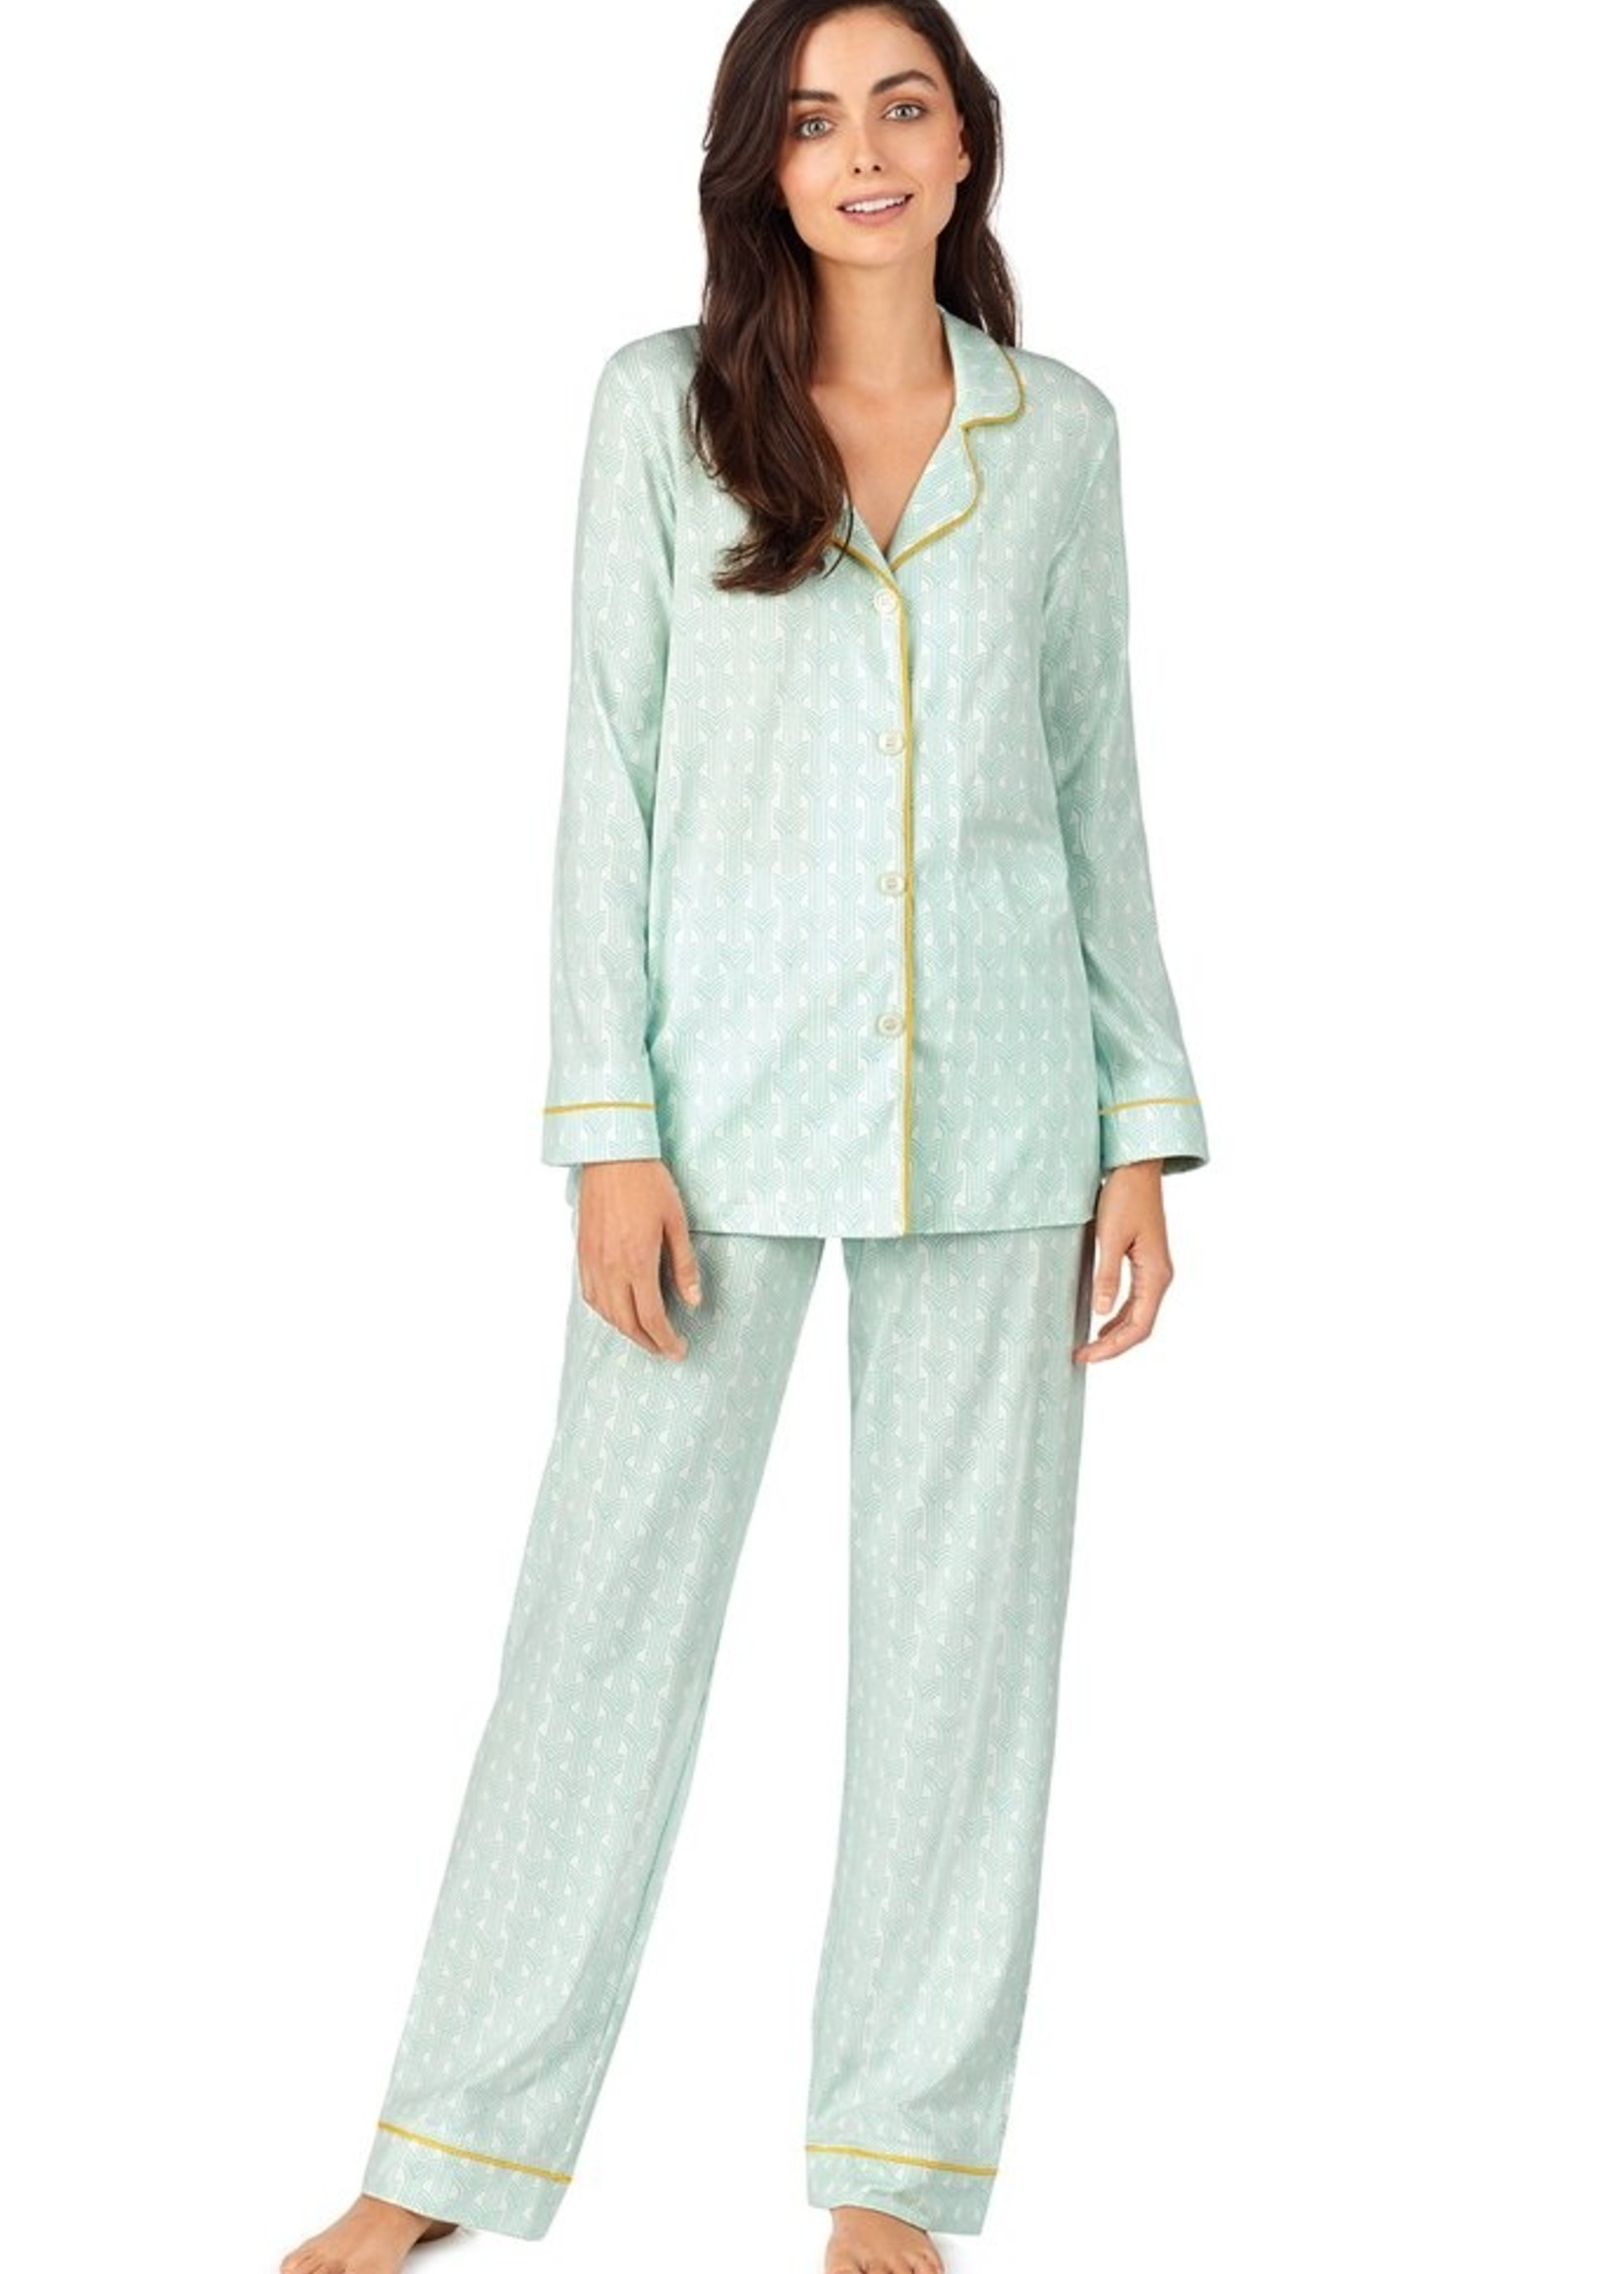 Bed Head Arches PJ